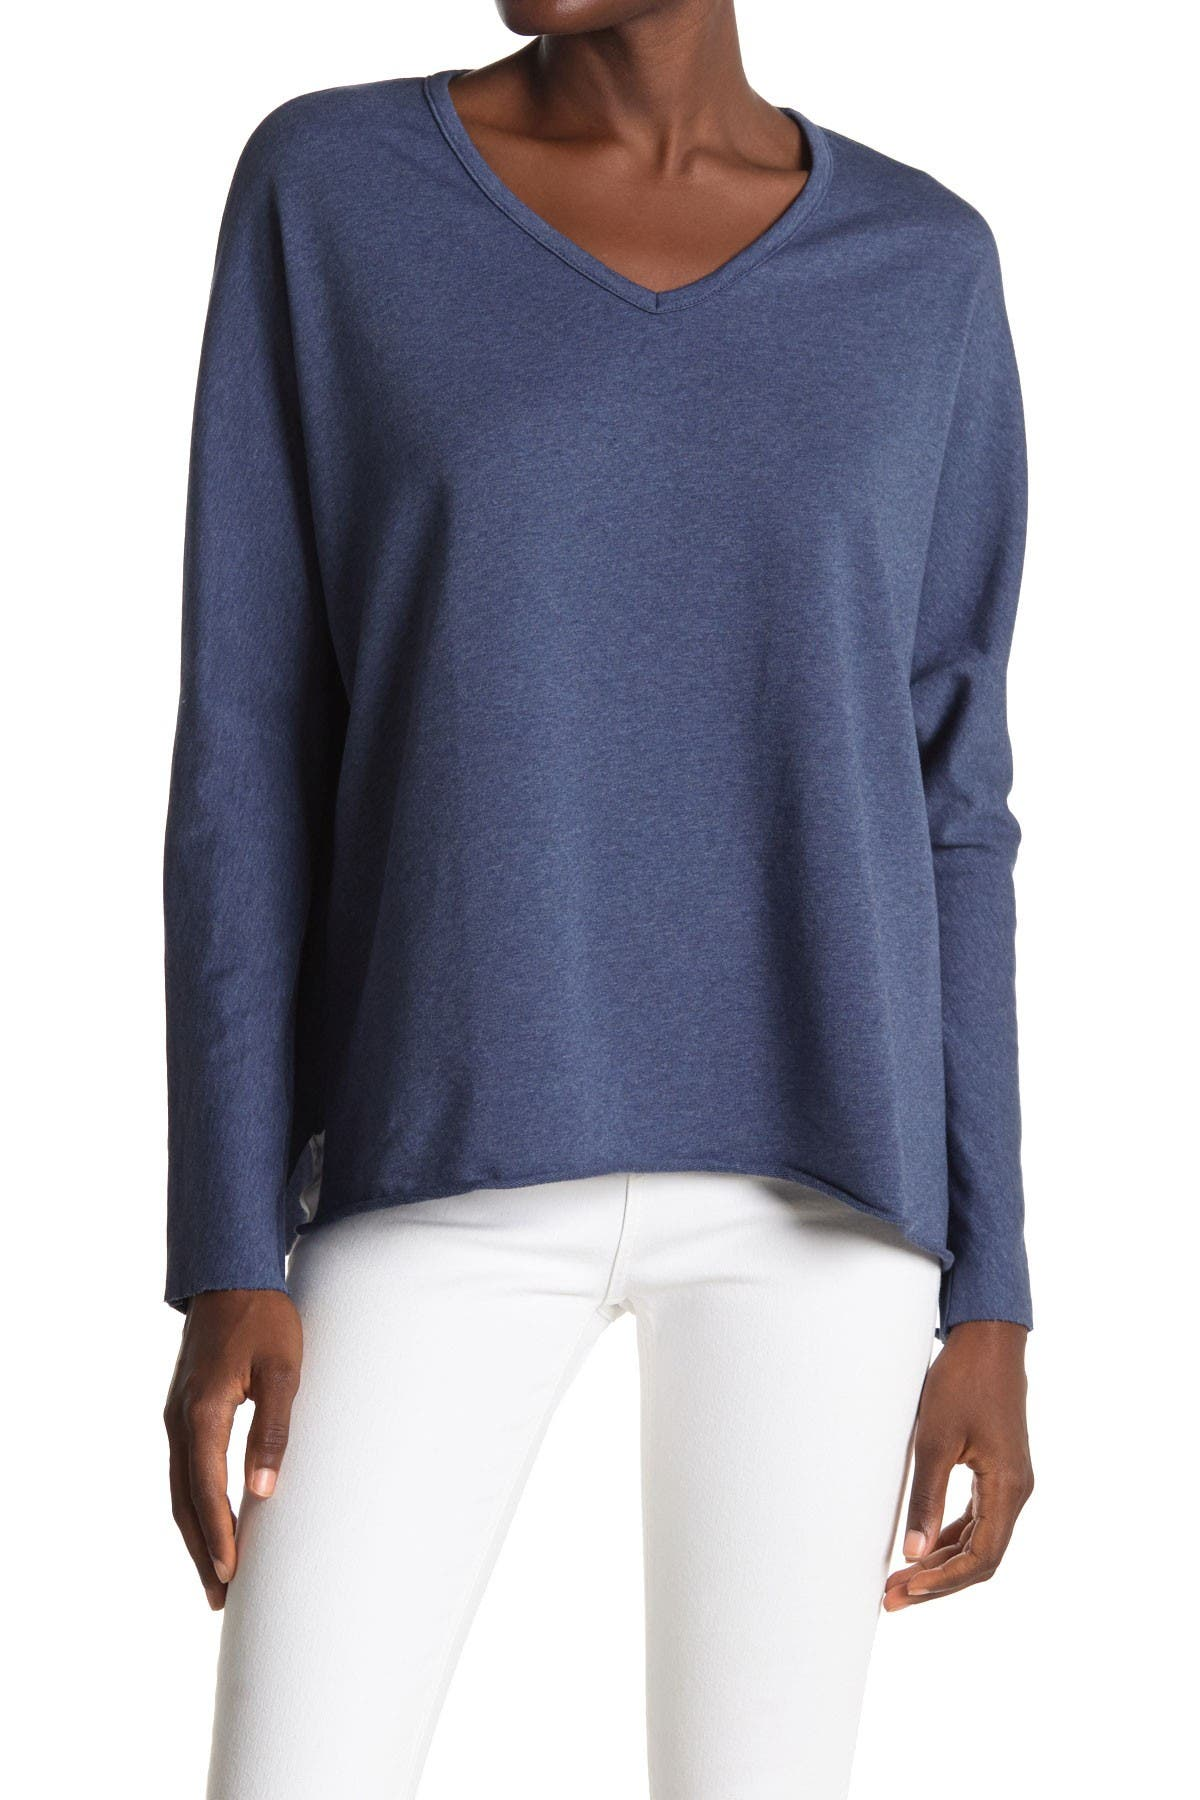 Image of FRANK & EILEEN Knit V-Neck Pullover Sweater